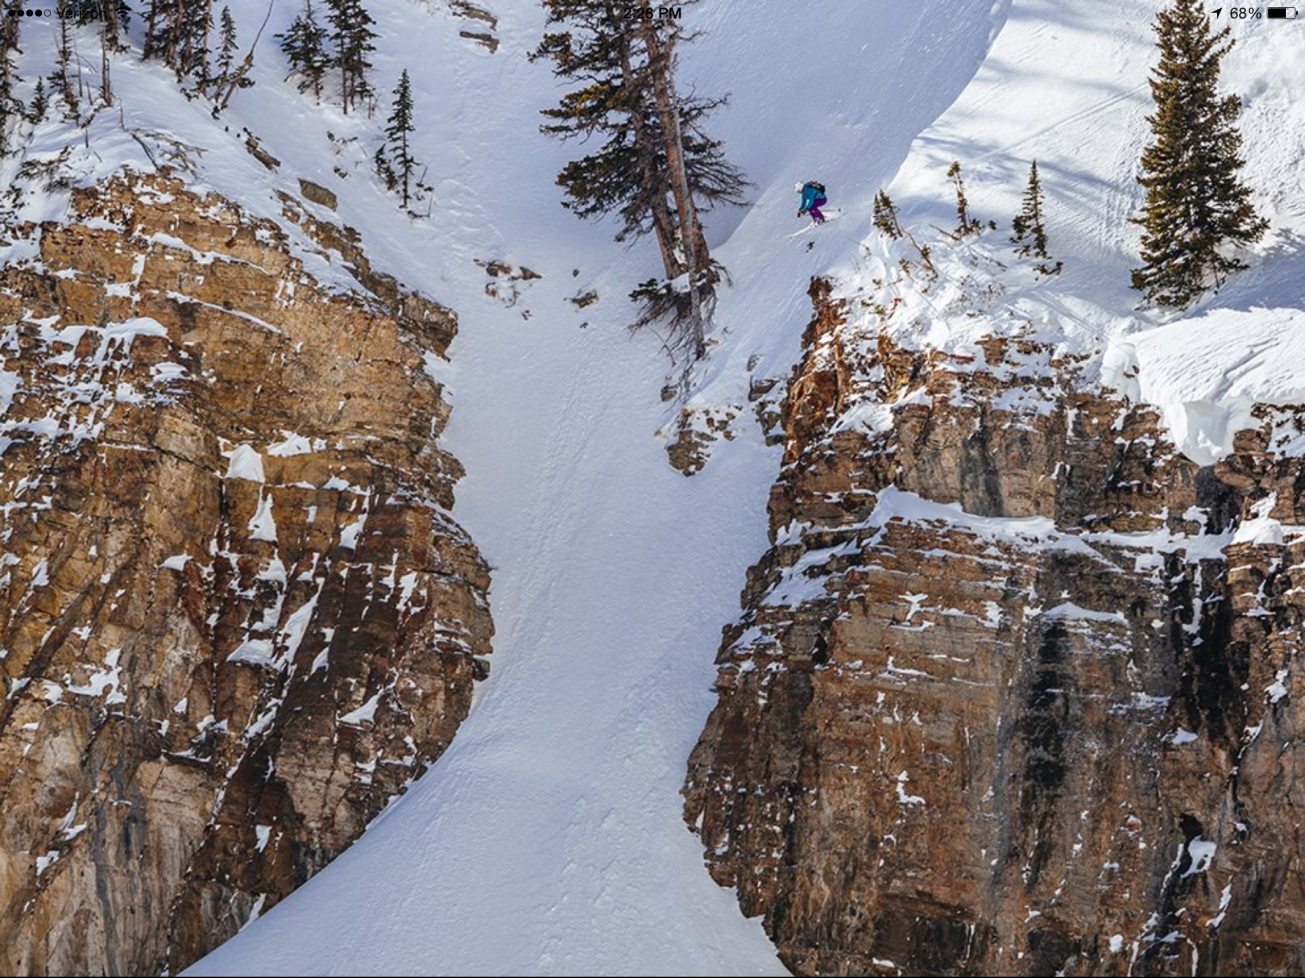 Couldn't find a pic of Hadleys air in Snowbird, but this is her going massive in  in Jackson Hole.